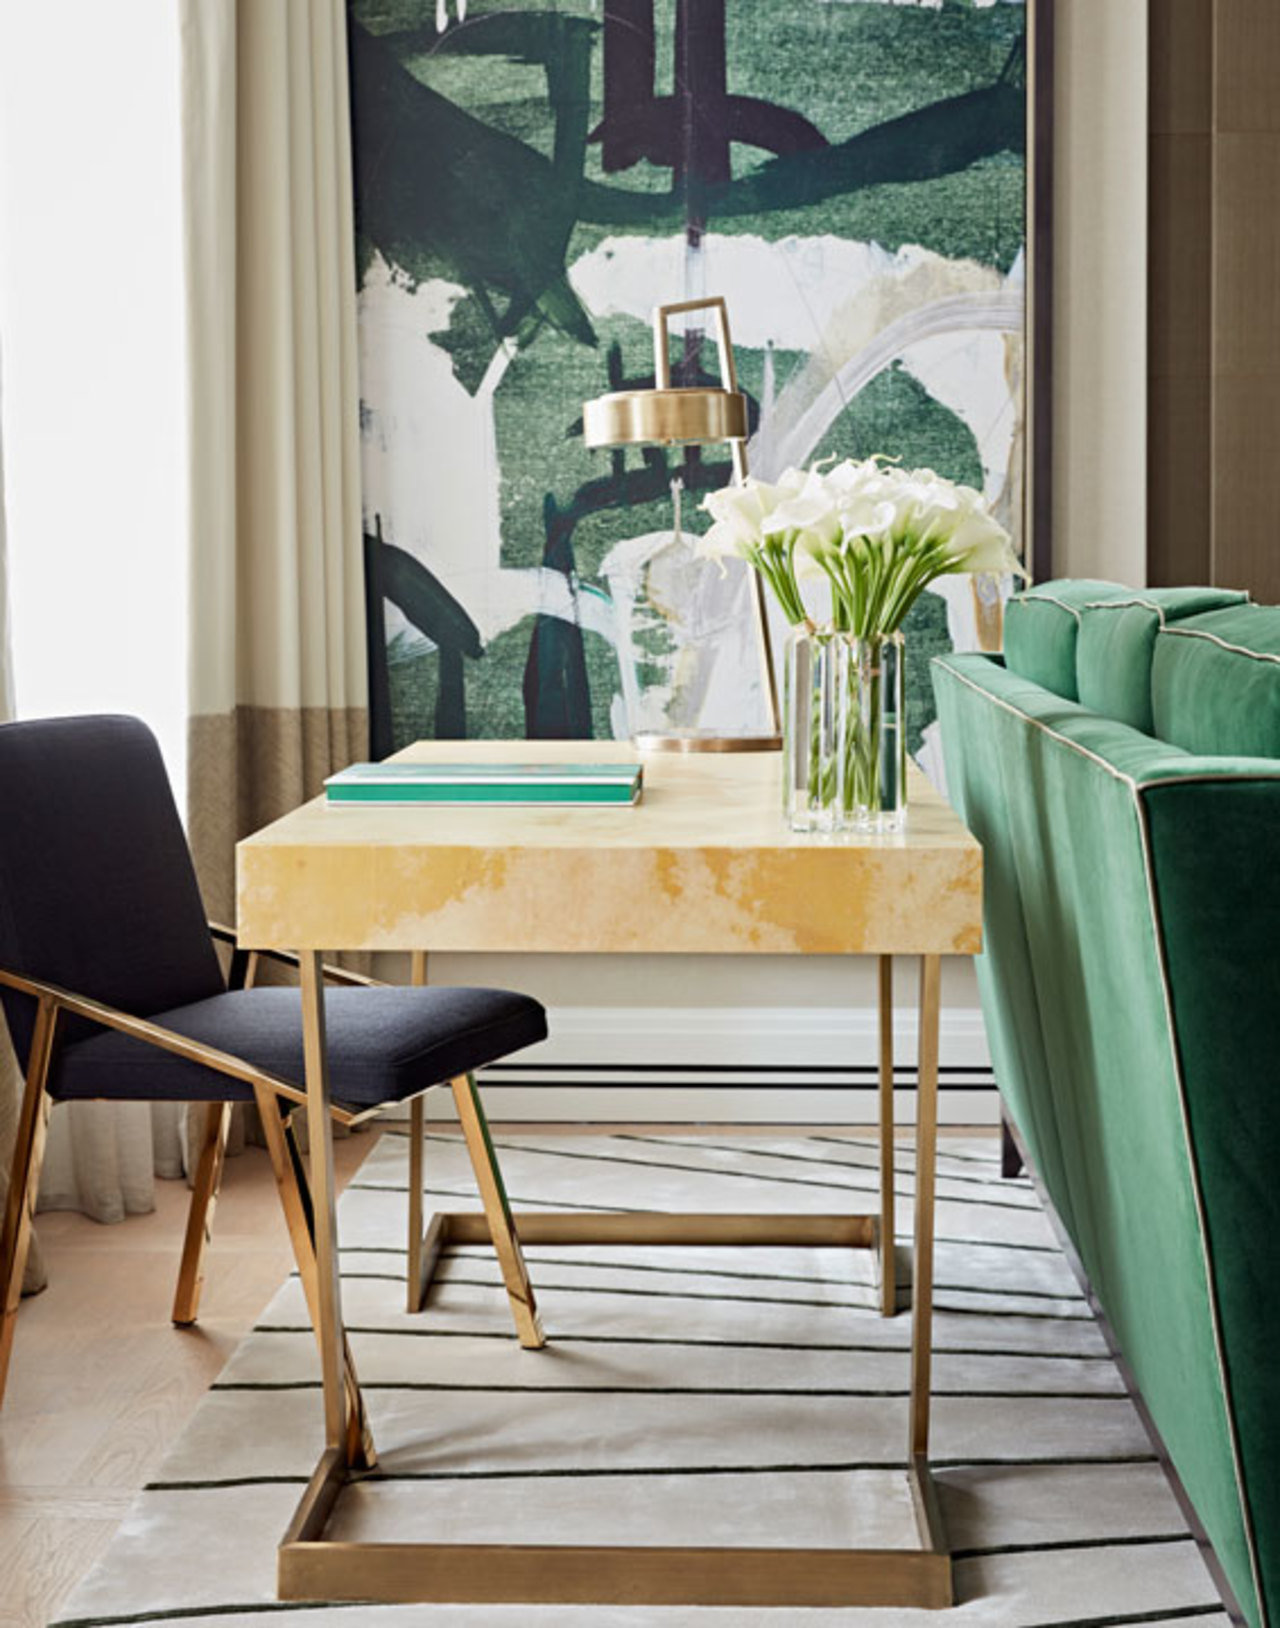 Designed by Taylor Howes London, this desk positioned behind the couch is a subtle way to incorporate